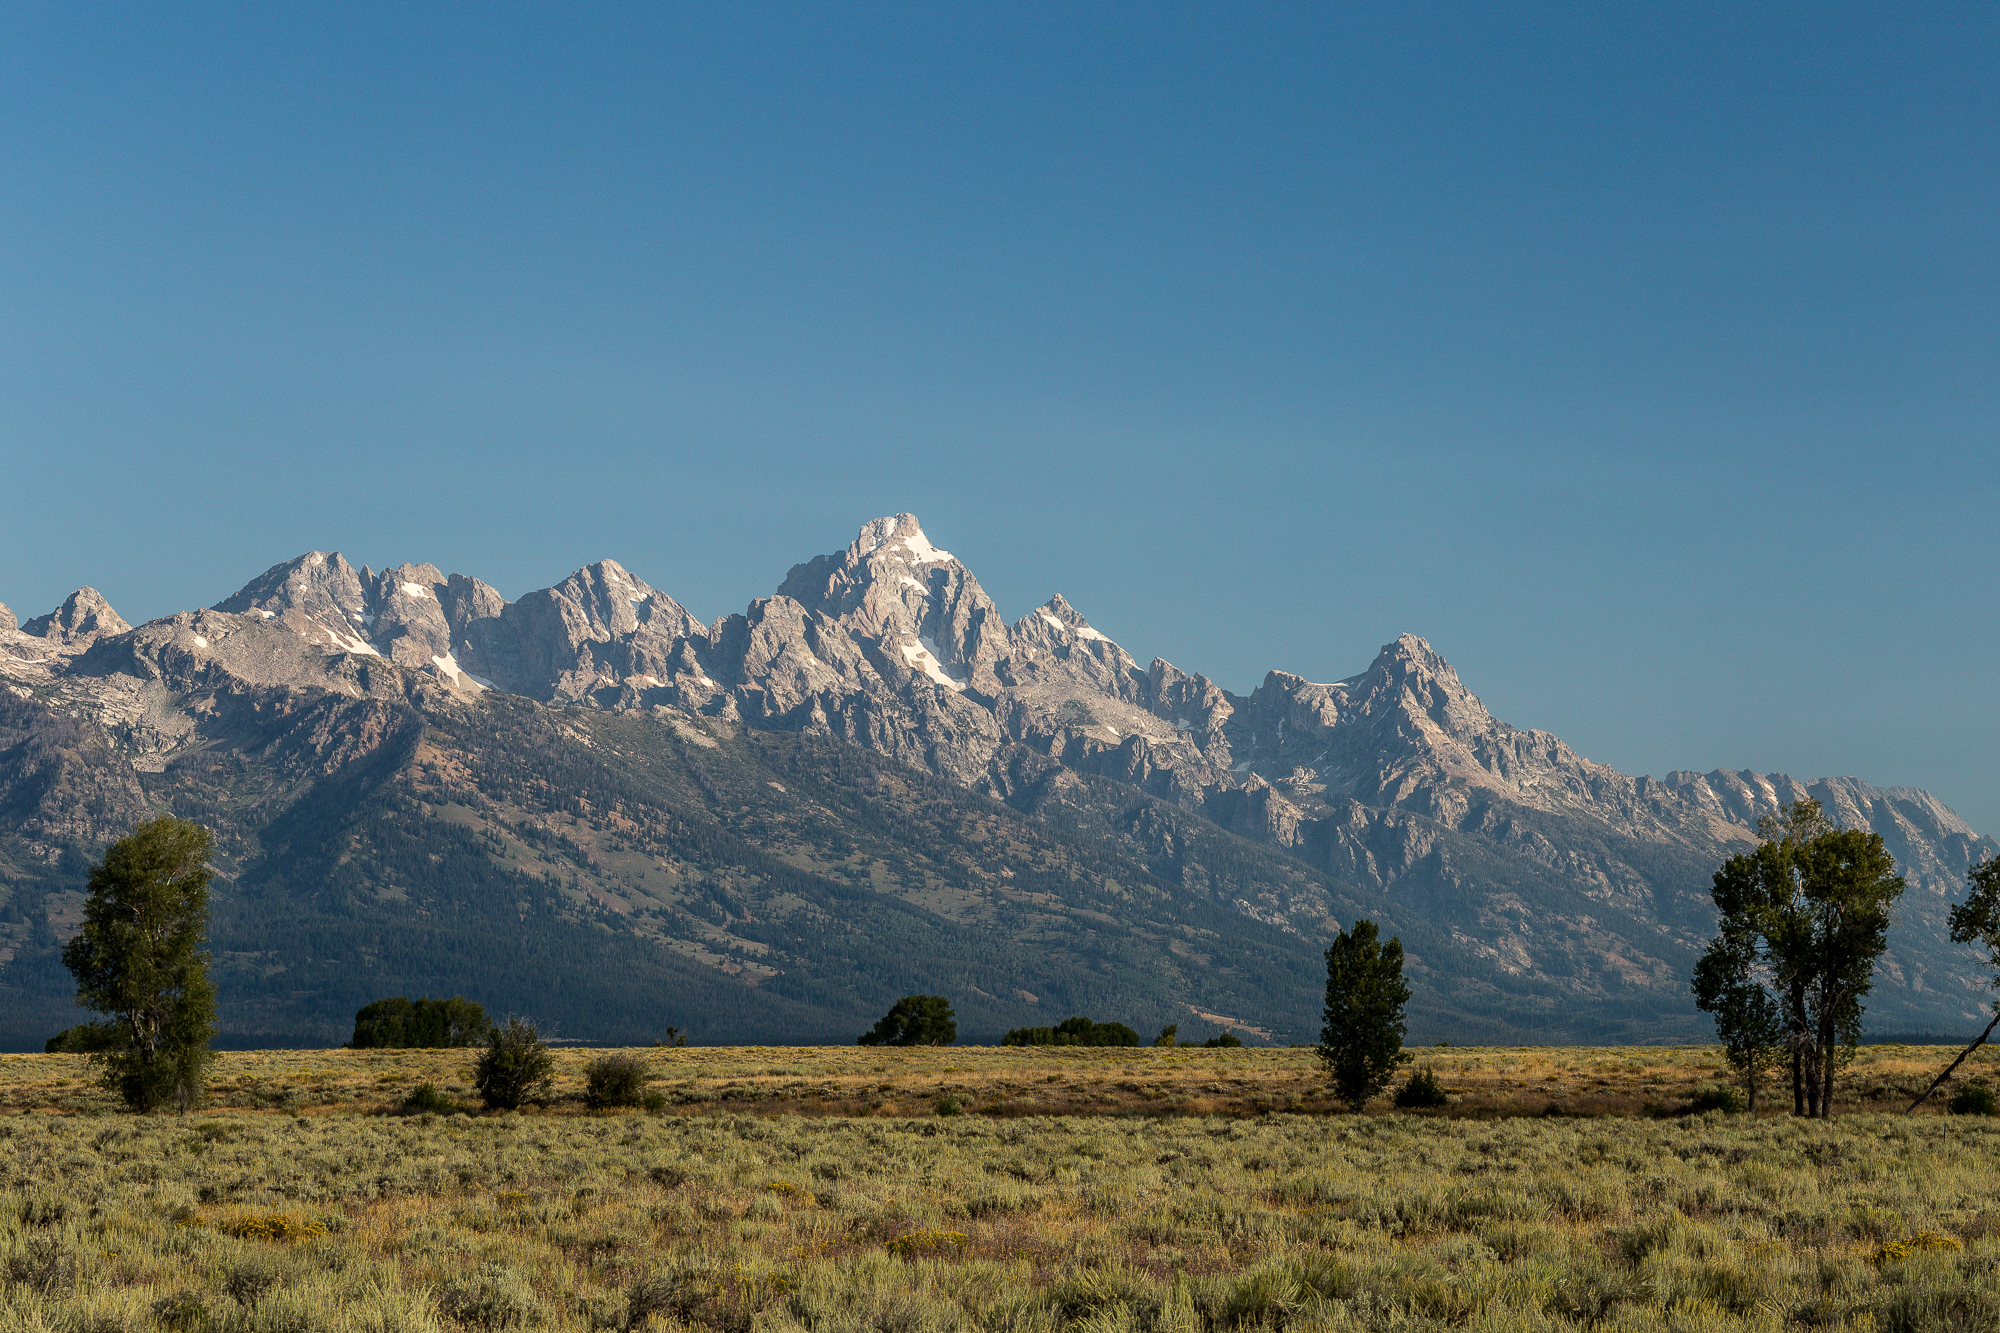 The view from our spot.  Grand Teton National Park